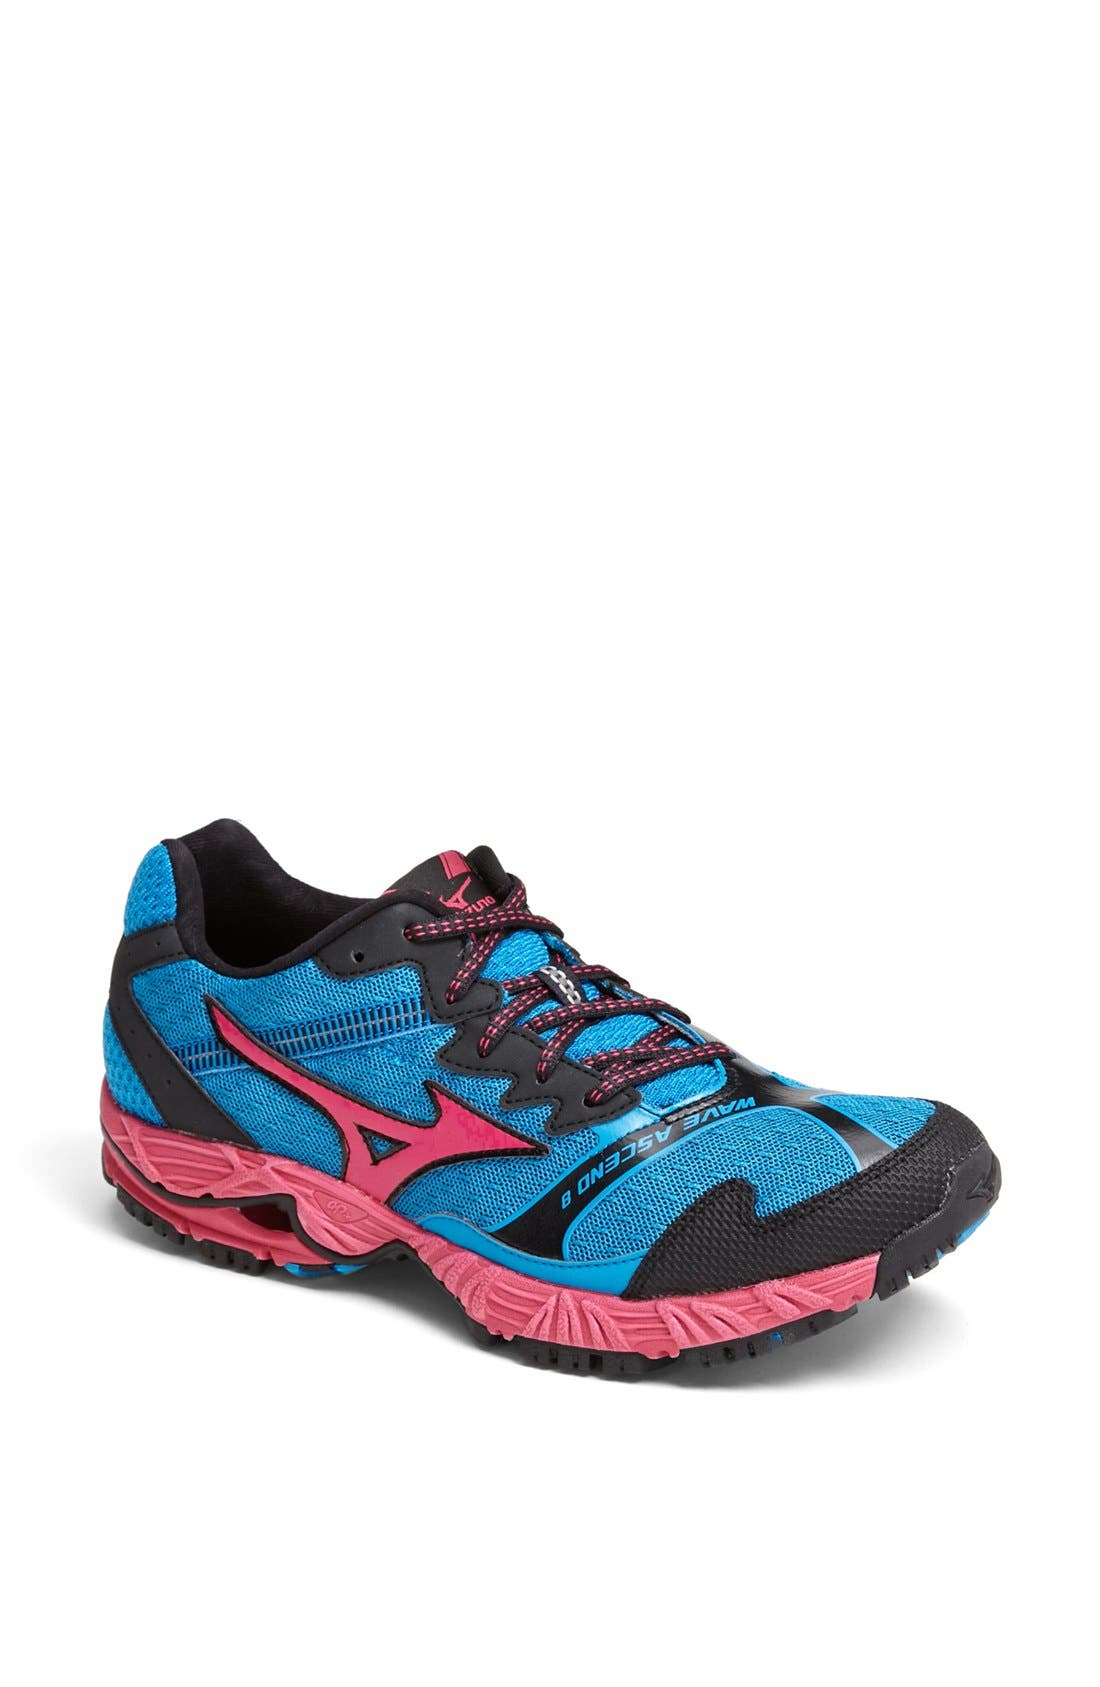 Main Image - Mizuno 'Wave Ascend 8' Running Shoe (Women)